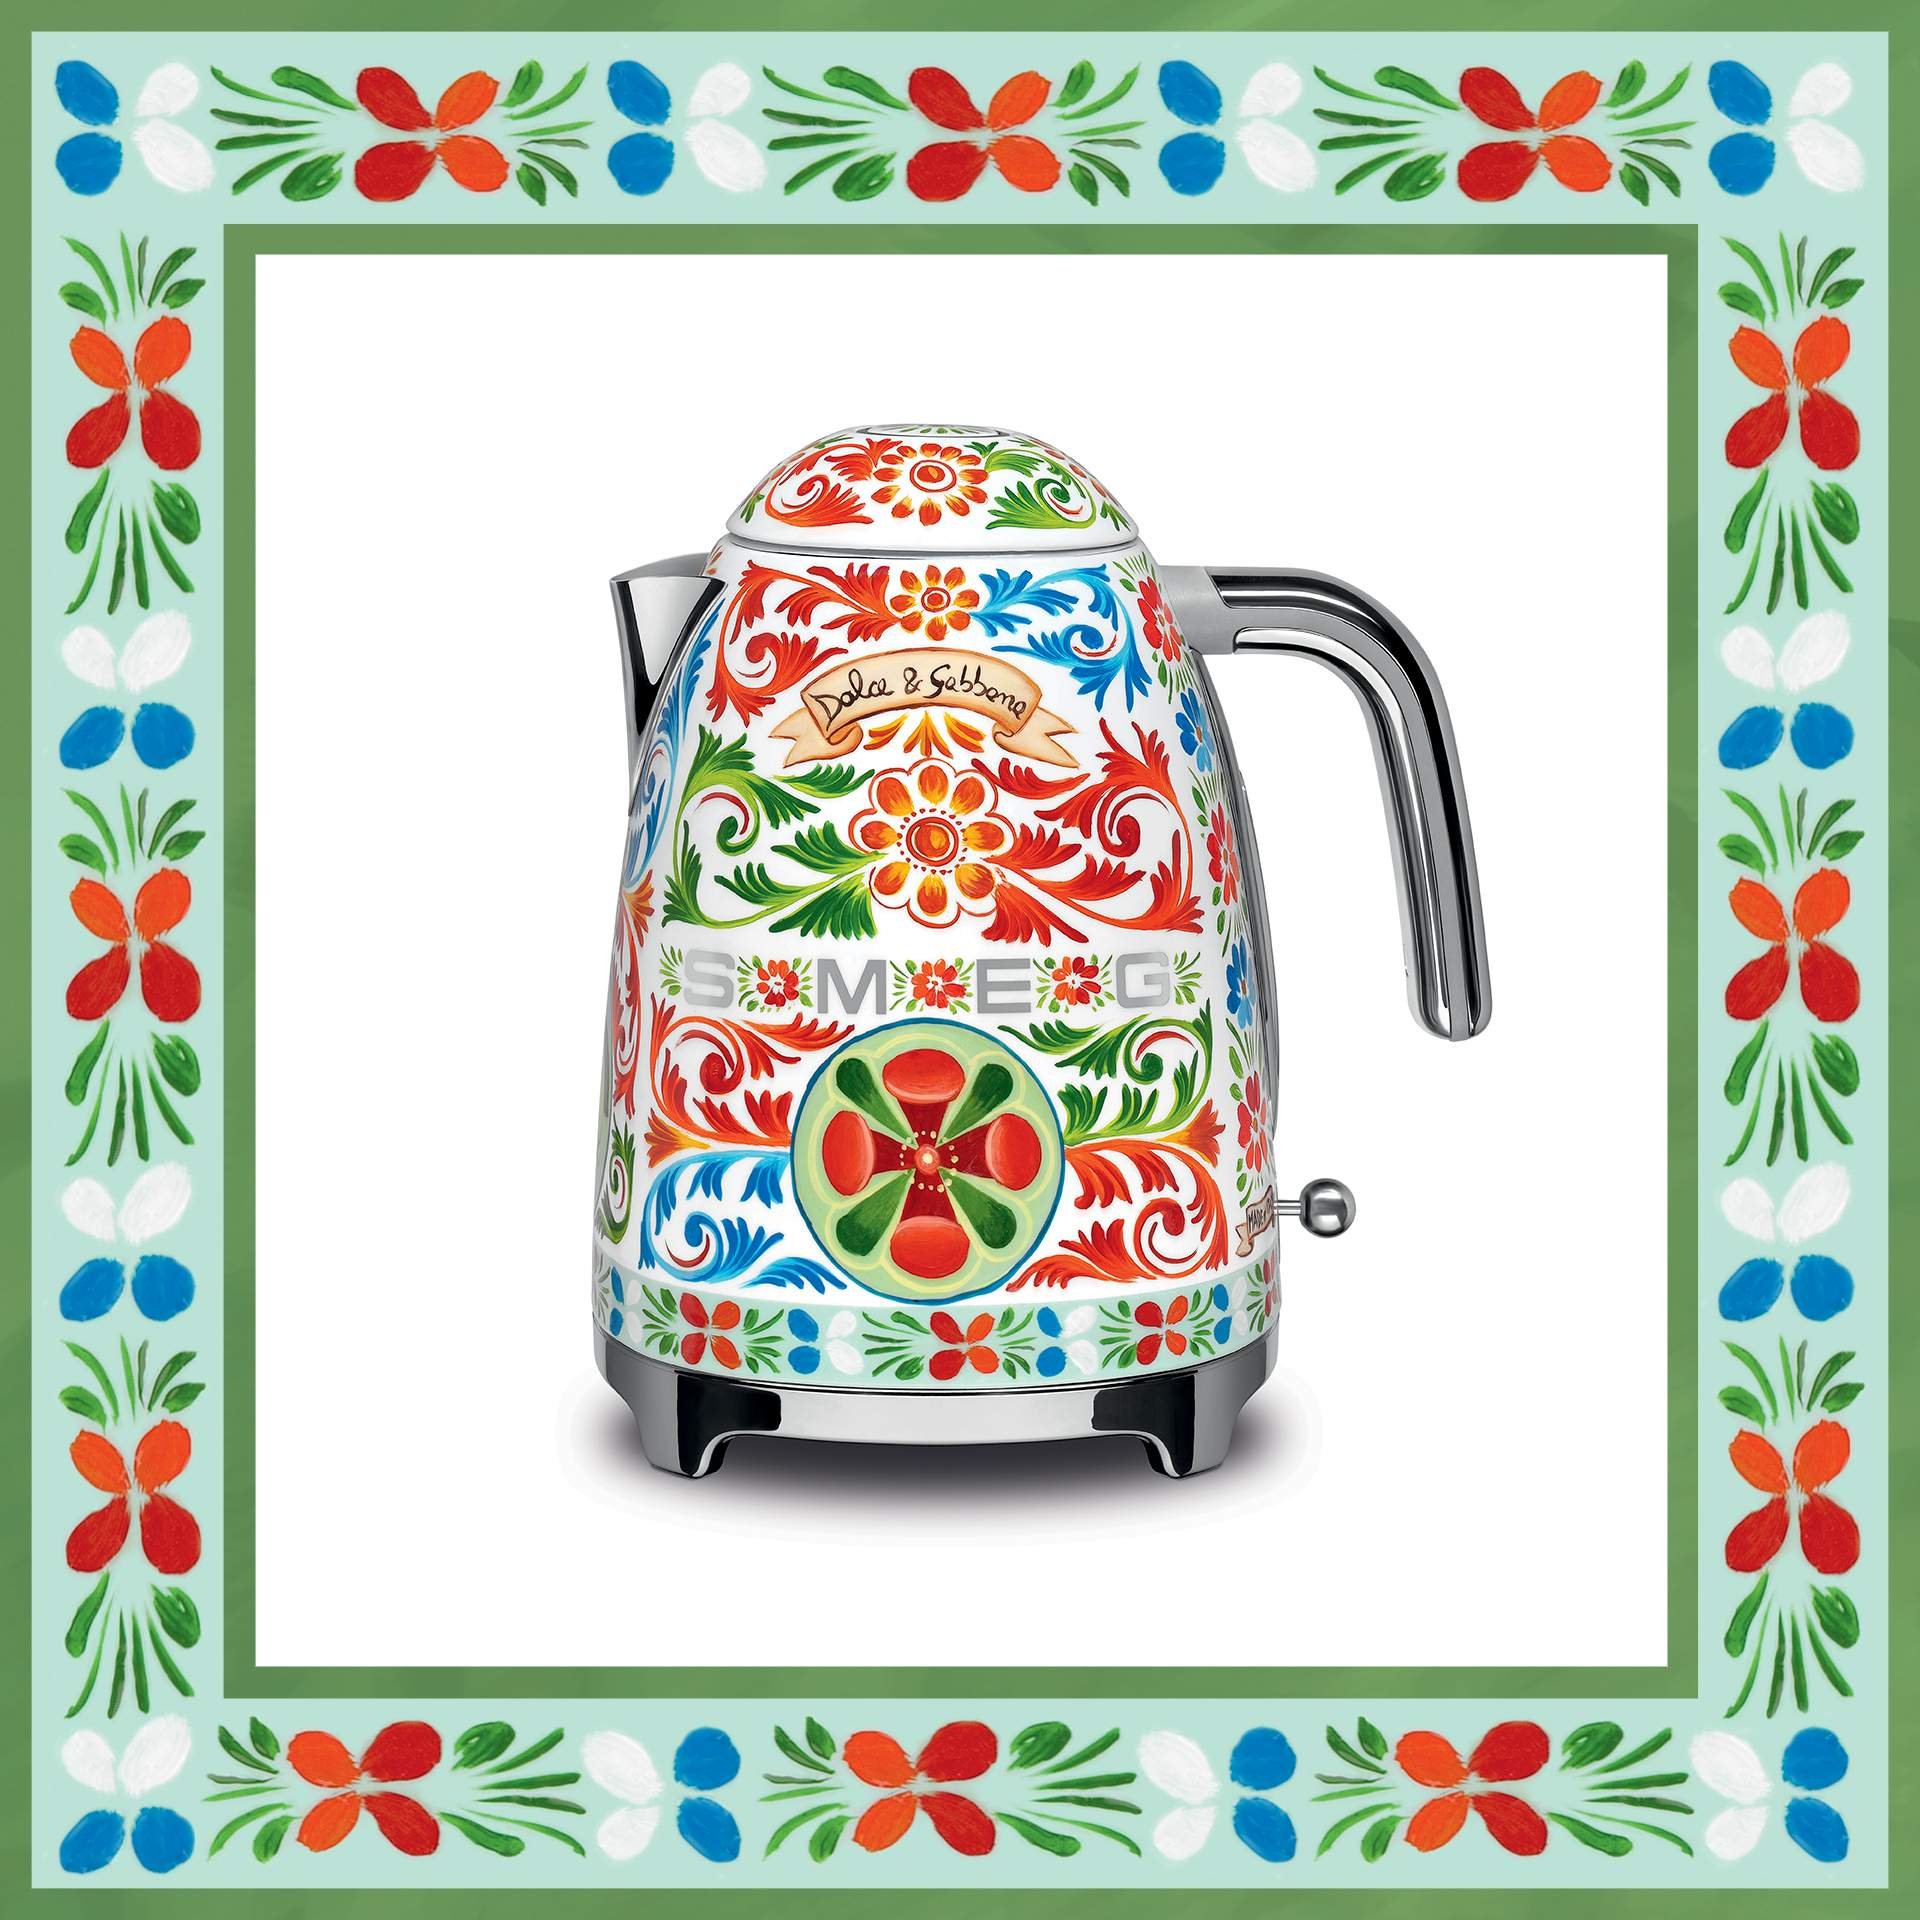 bouilloire design Smeg & Dolce&Gabbana - Sicily is my love